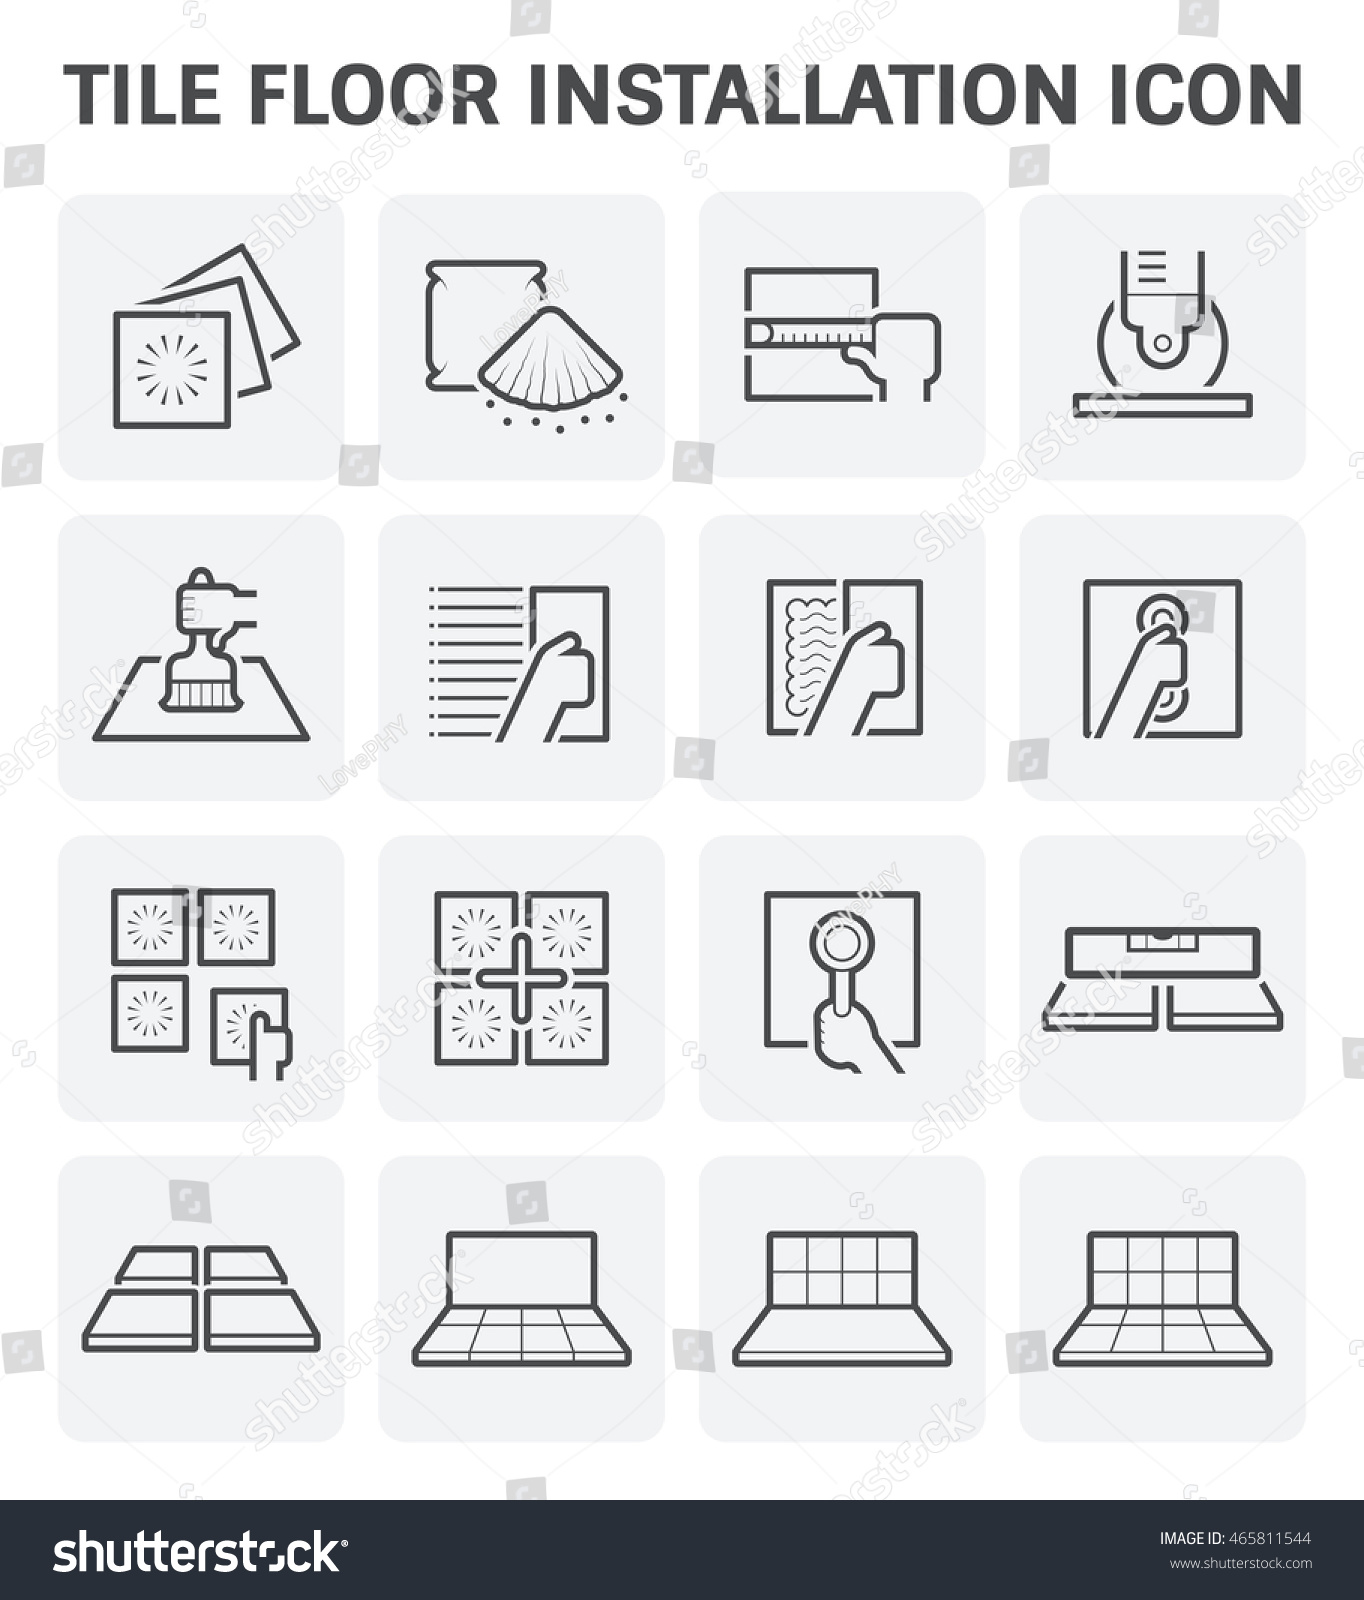 Icon Tile Work : Tile floor installation material vector icon stock